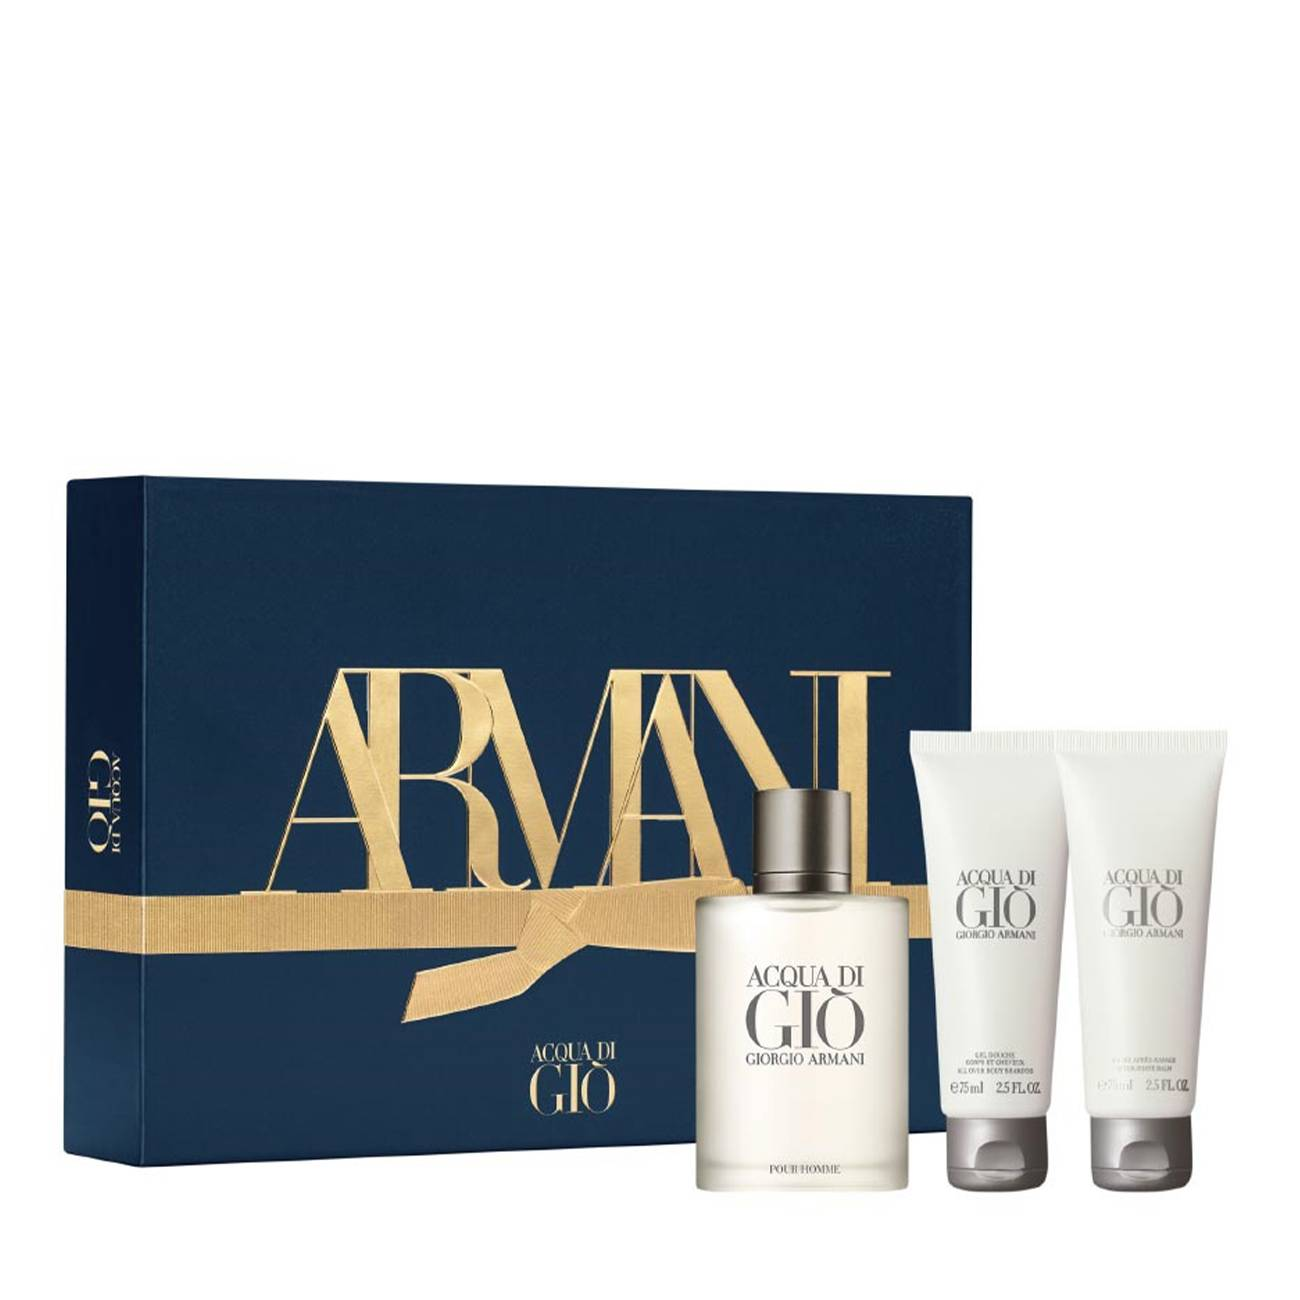 ACQUA DI GIO POUR HOMME SET 250ml imagine produs